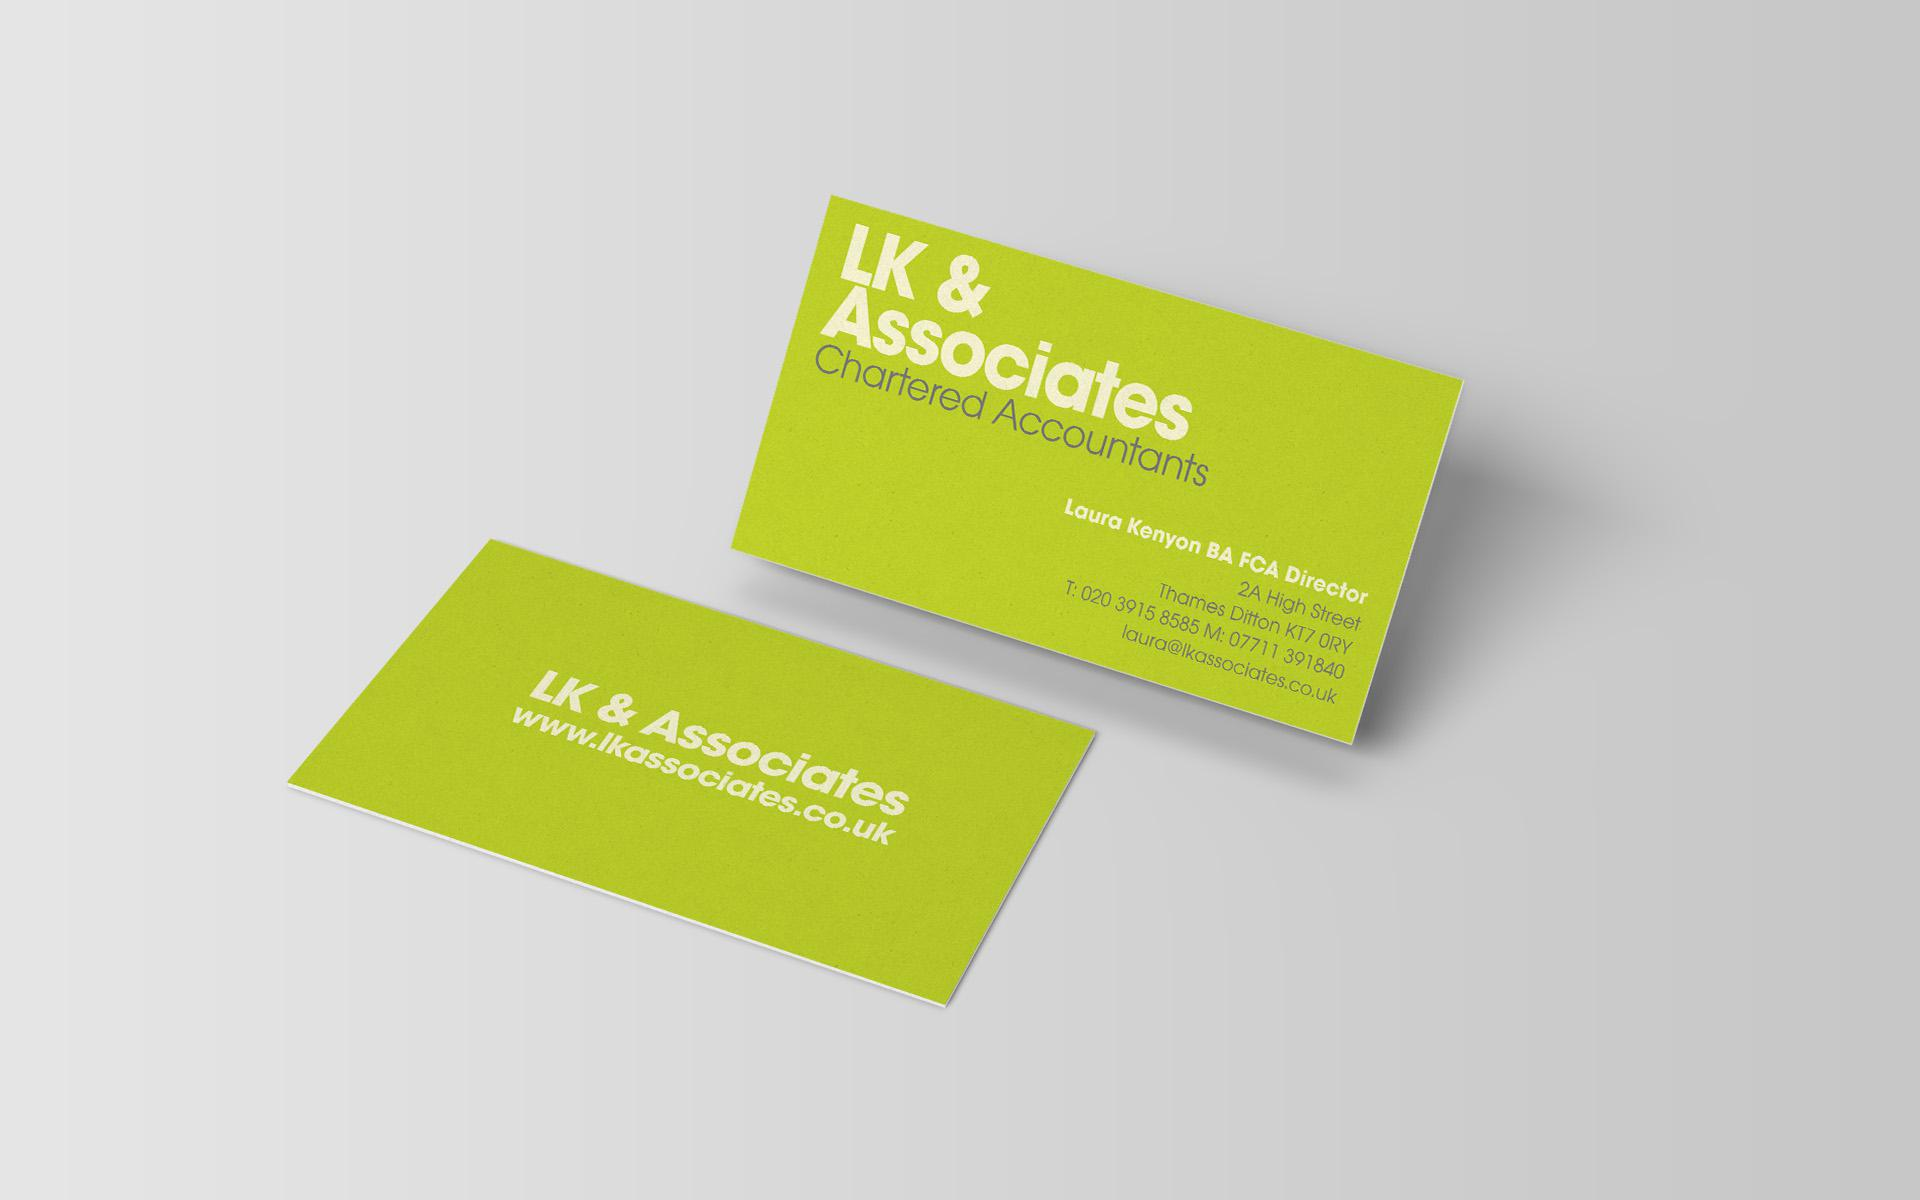 LK-associates-business-card.jpg